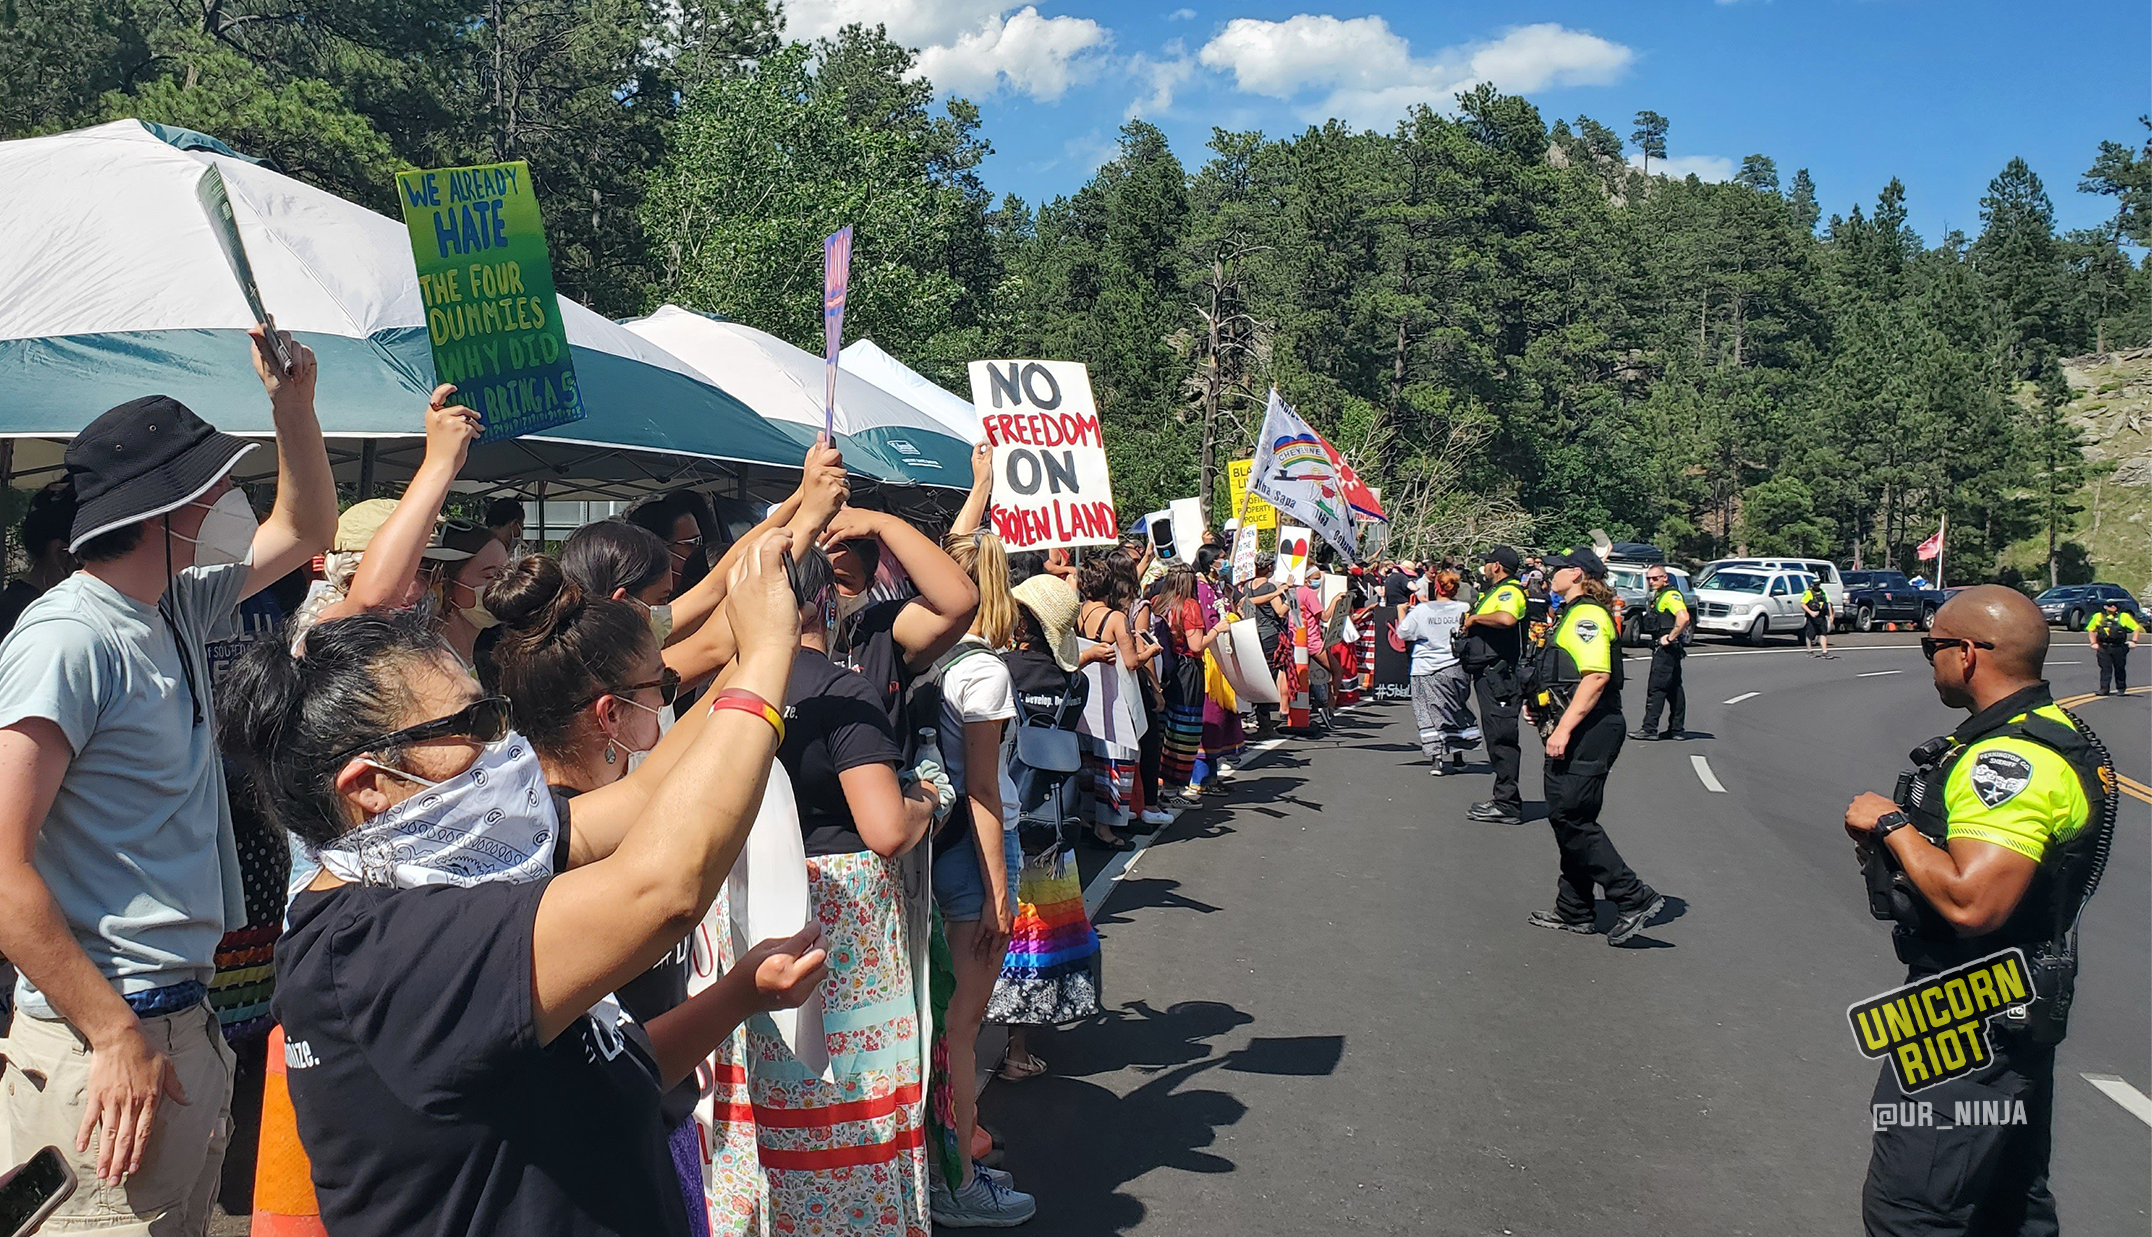 """image: Indigenous people and activists gathered on the side of the road leading to Keystone, SD. The anti-Trump, anti-Mount Rushmore demonstrators hold protests signs such as """"We already hate the four dummies, why did you bring a 5th?"""""""